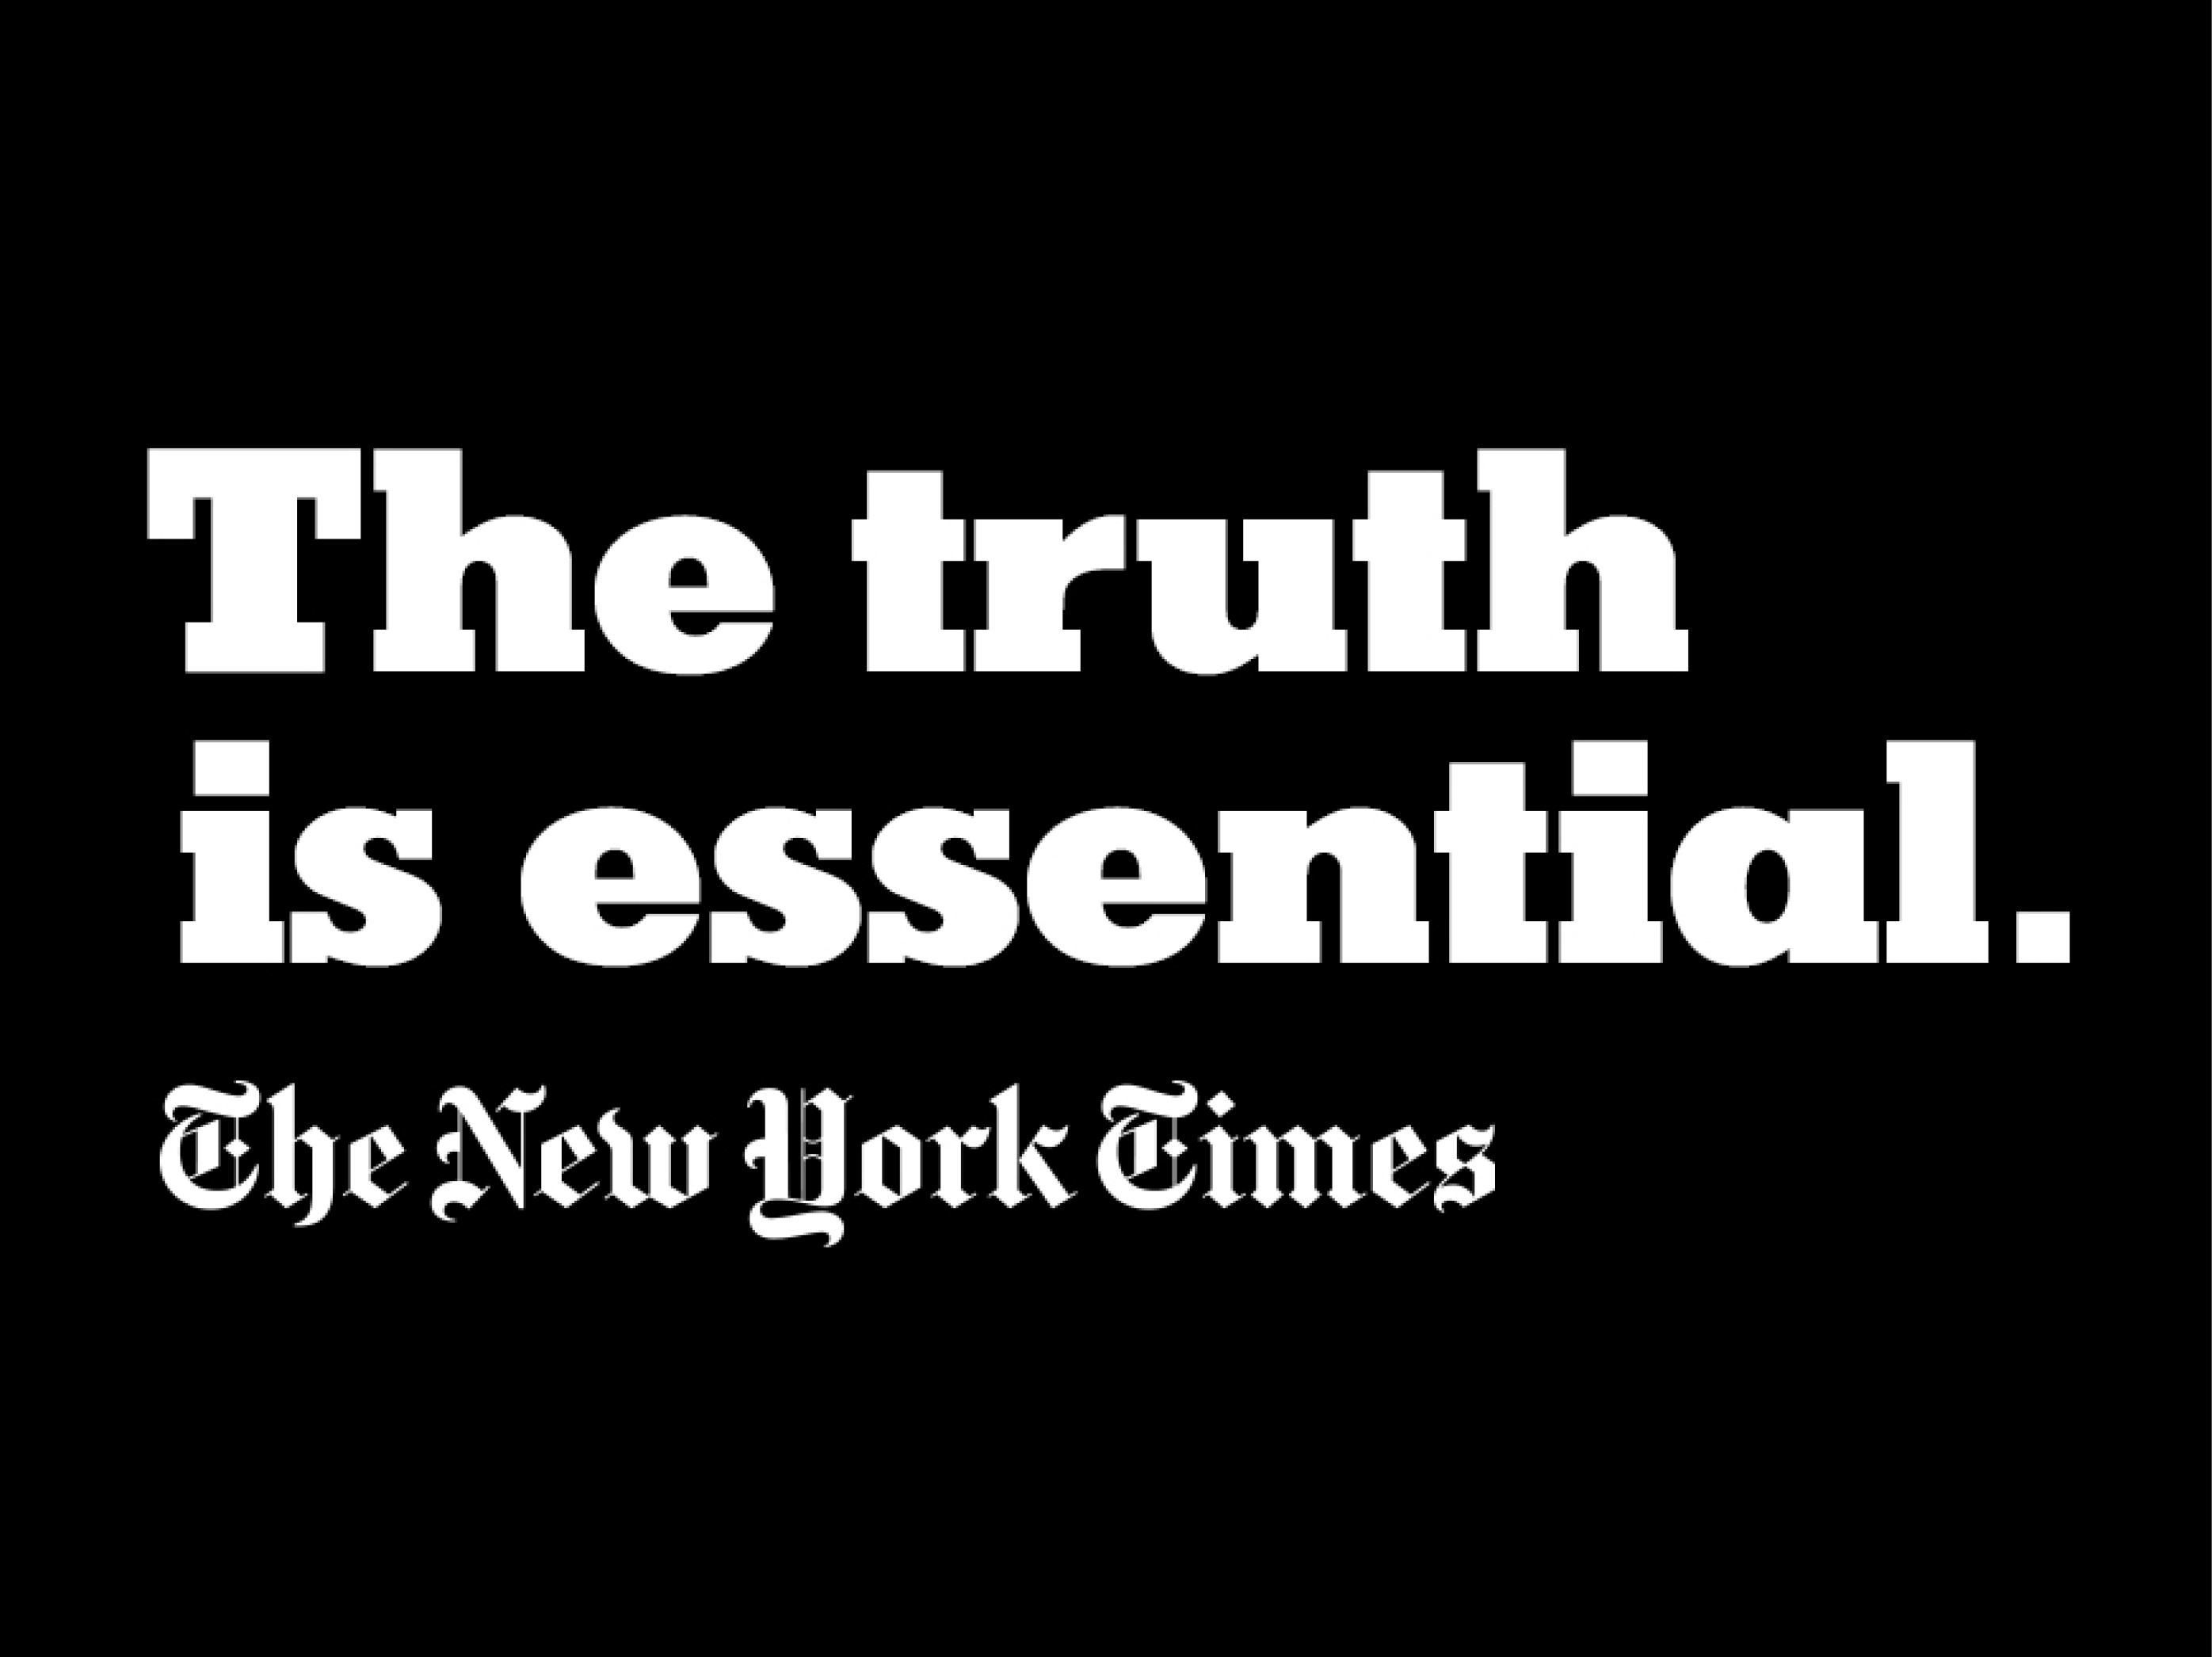 Web graphic for digital library NYT